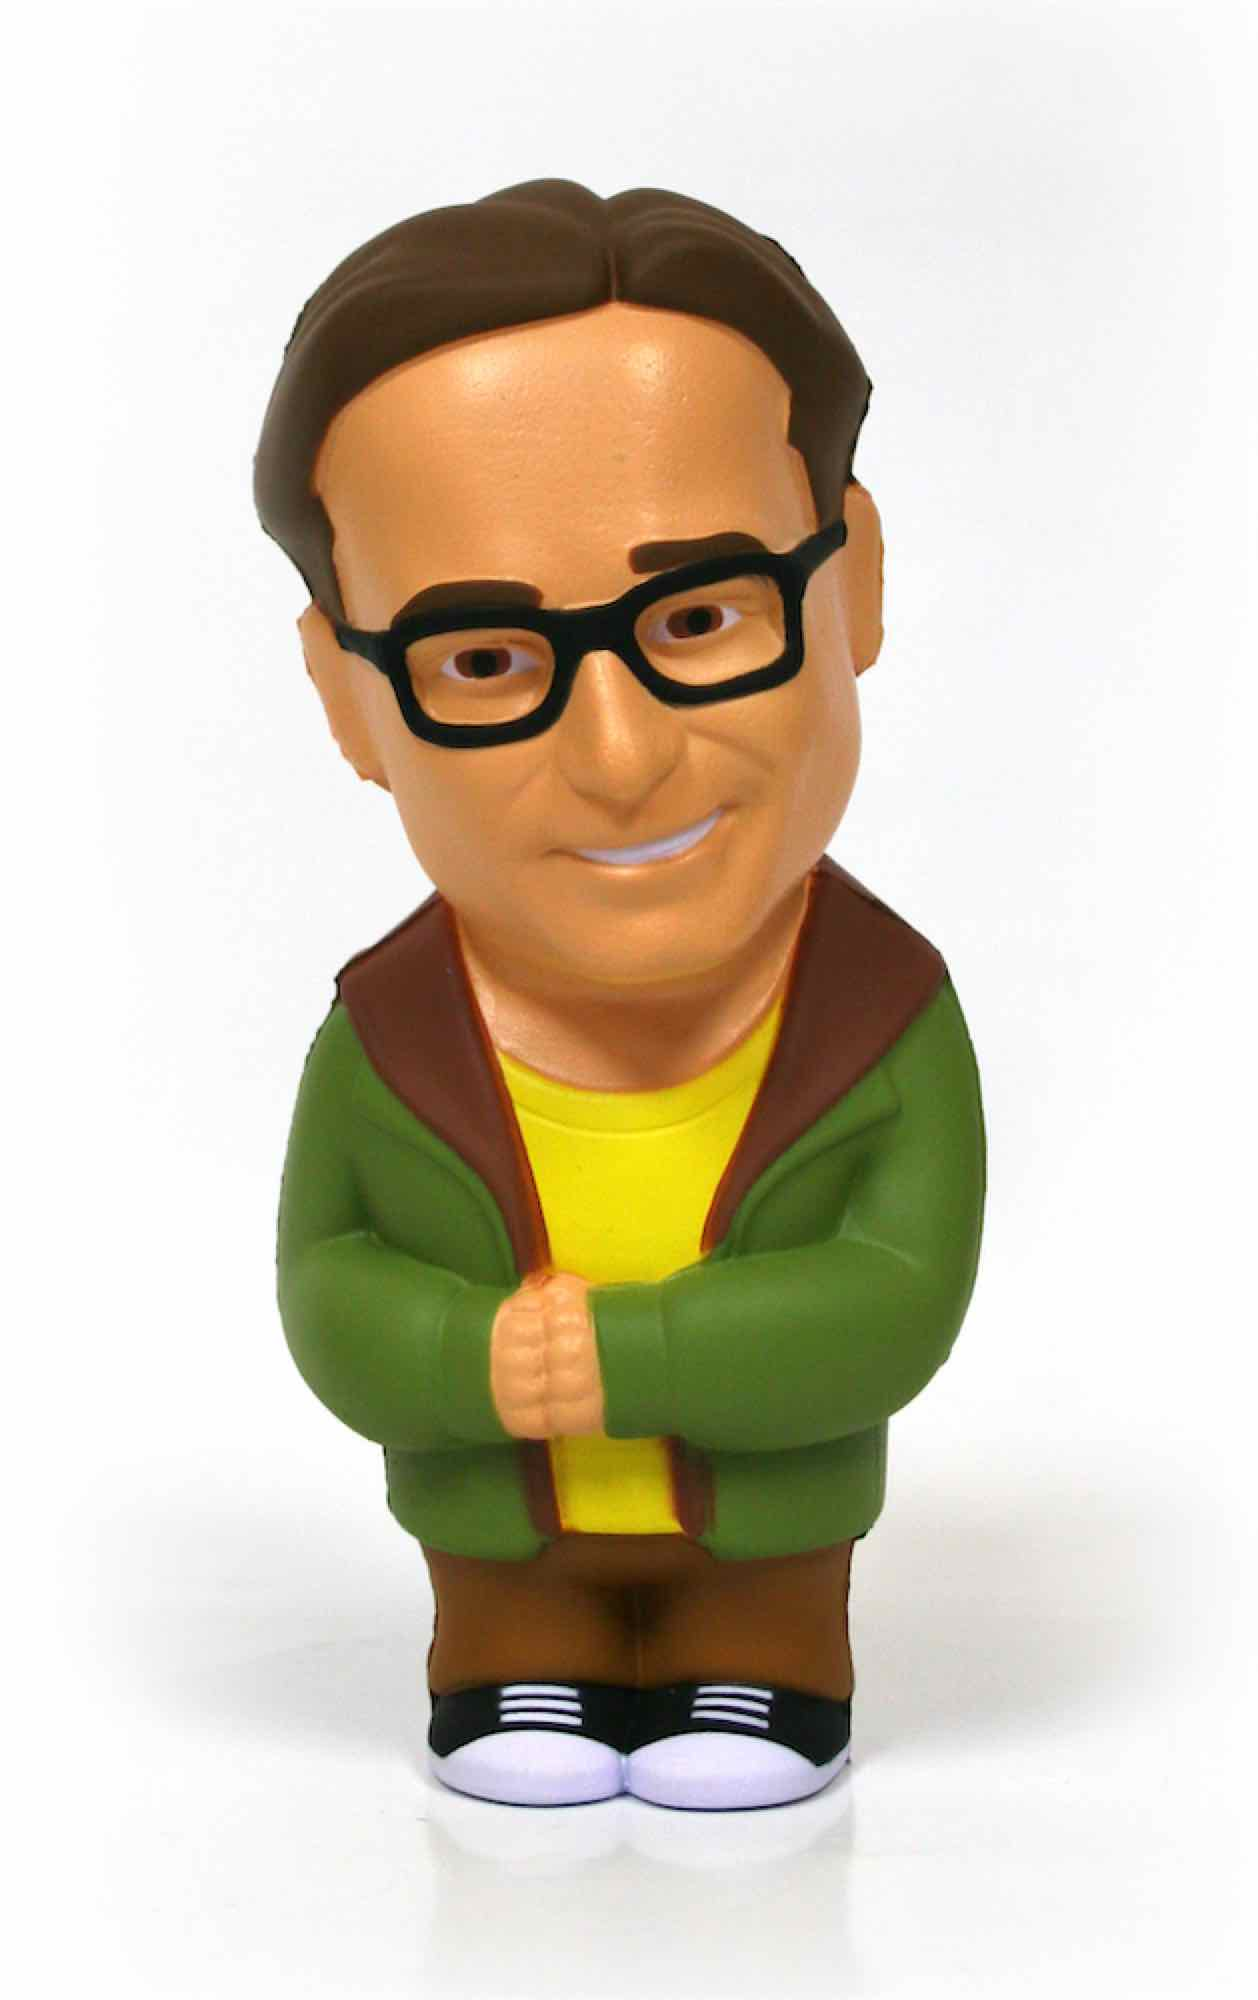 O.FLASH - LEONARD HOFSTADTER FIGURA ANTIESTRES 14 CM THE BIG BANG THEORY